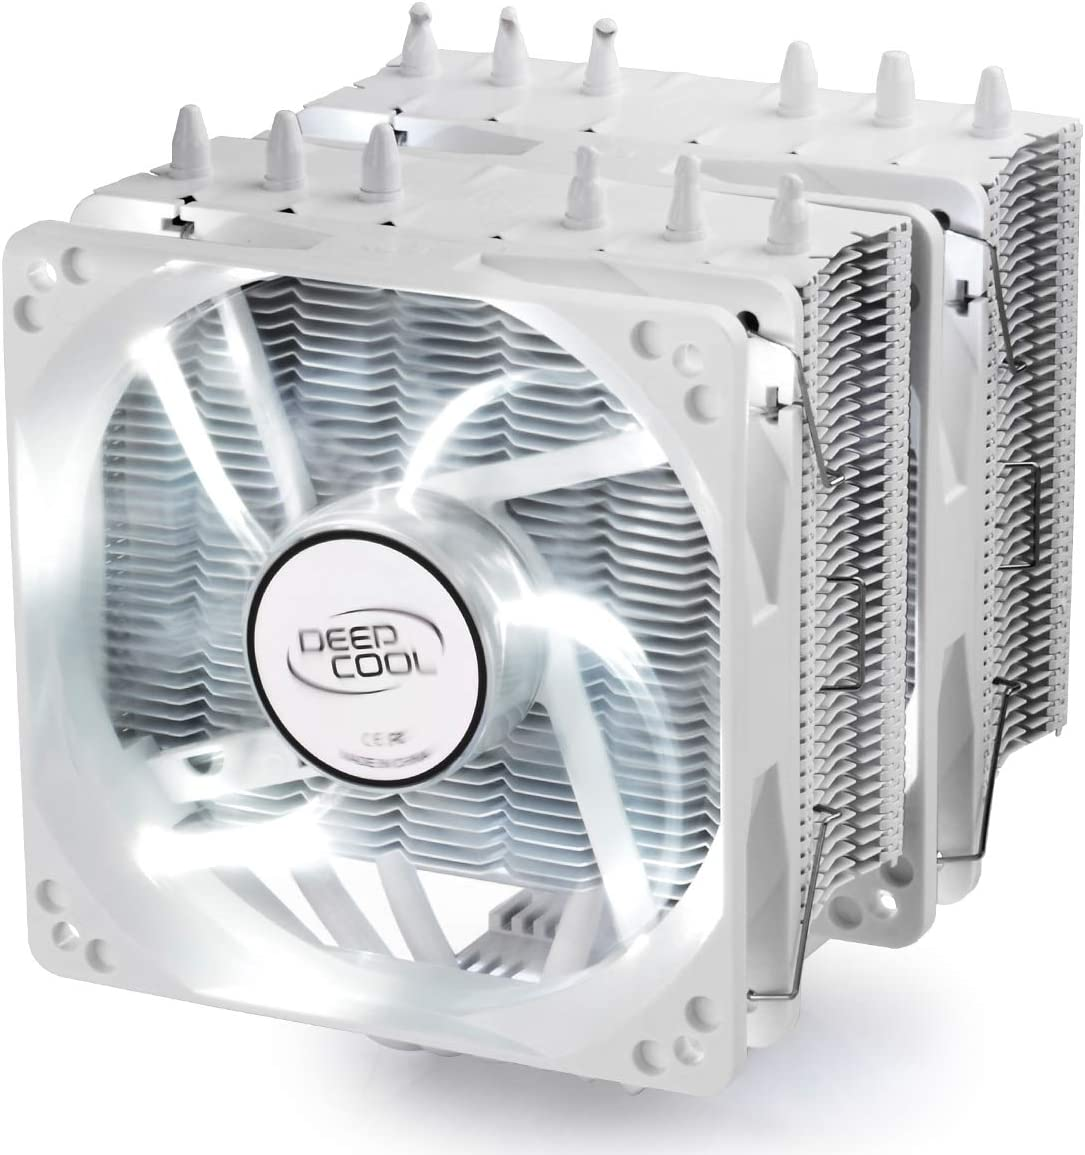 DEEP COOL NEPTWIN WH CPU Air Cooler Dual 120mm White LED Fans AM4 Compatible 6 Heatpipes Twin-Tower Heatsink